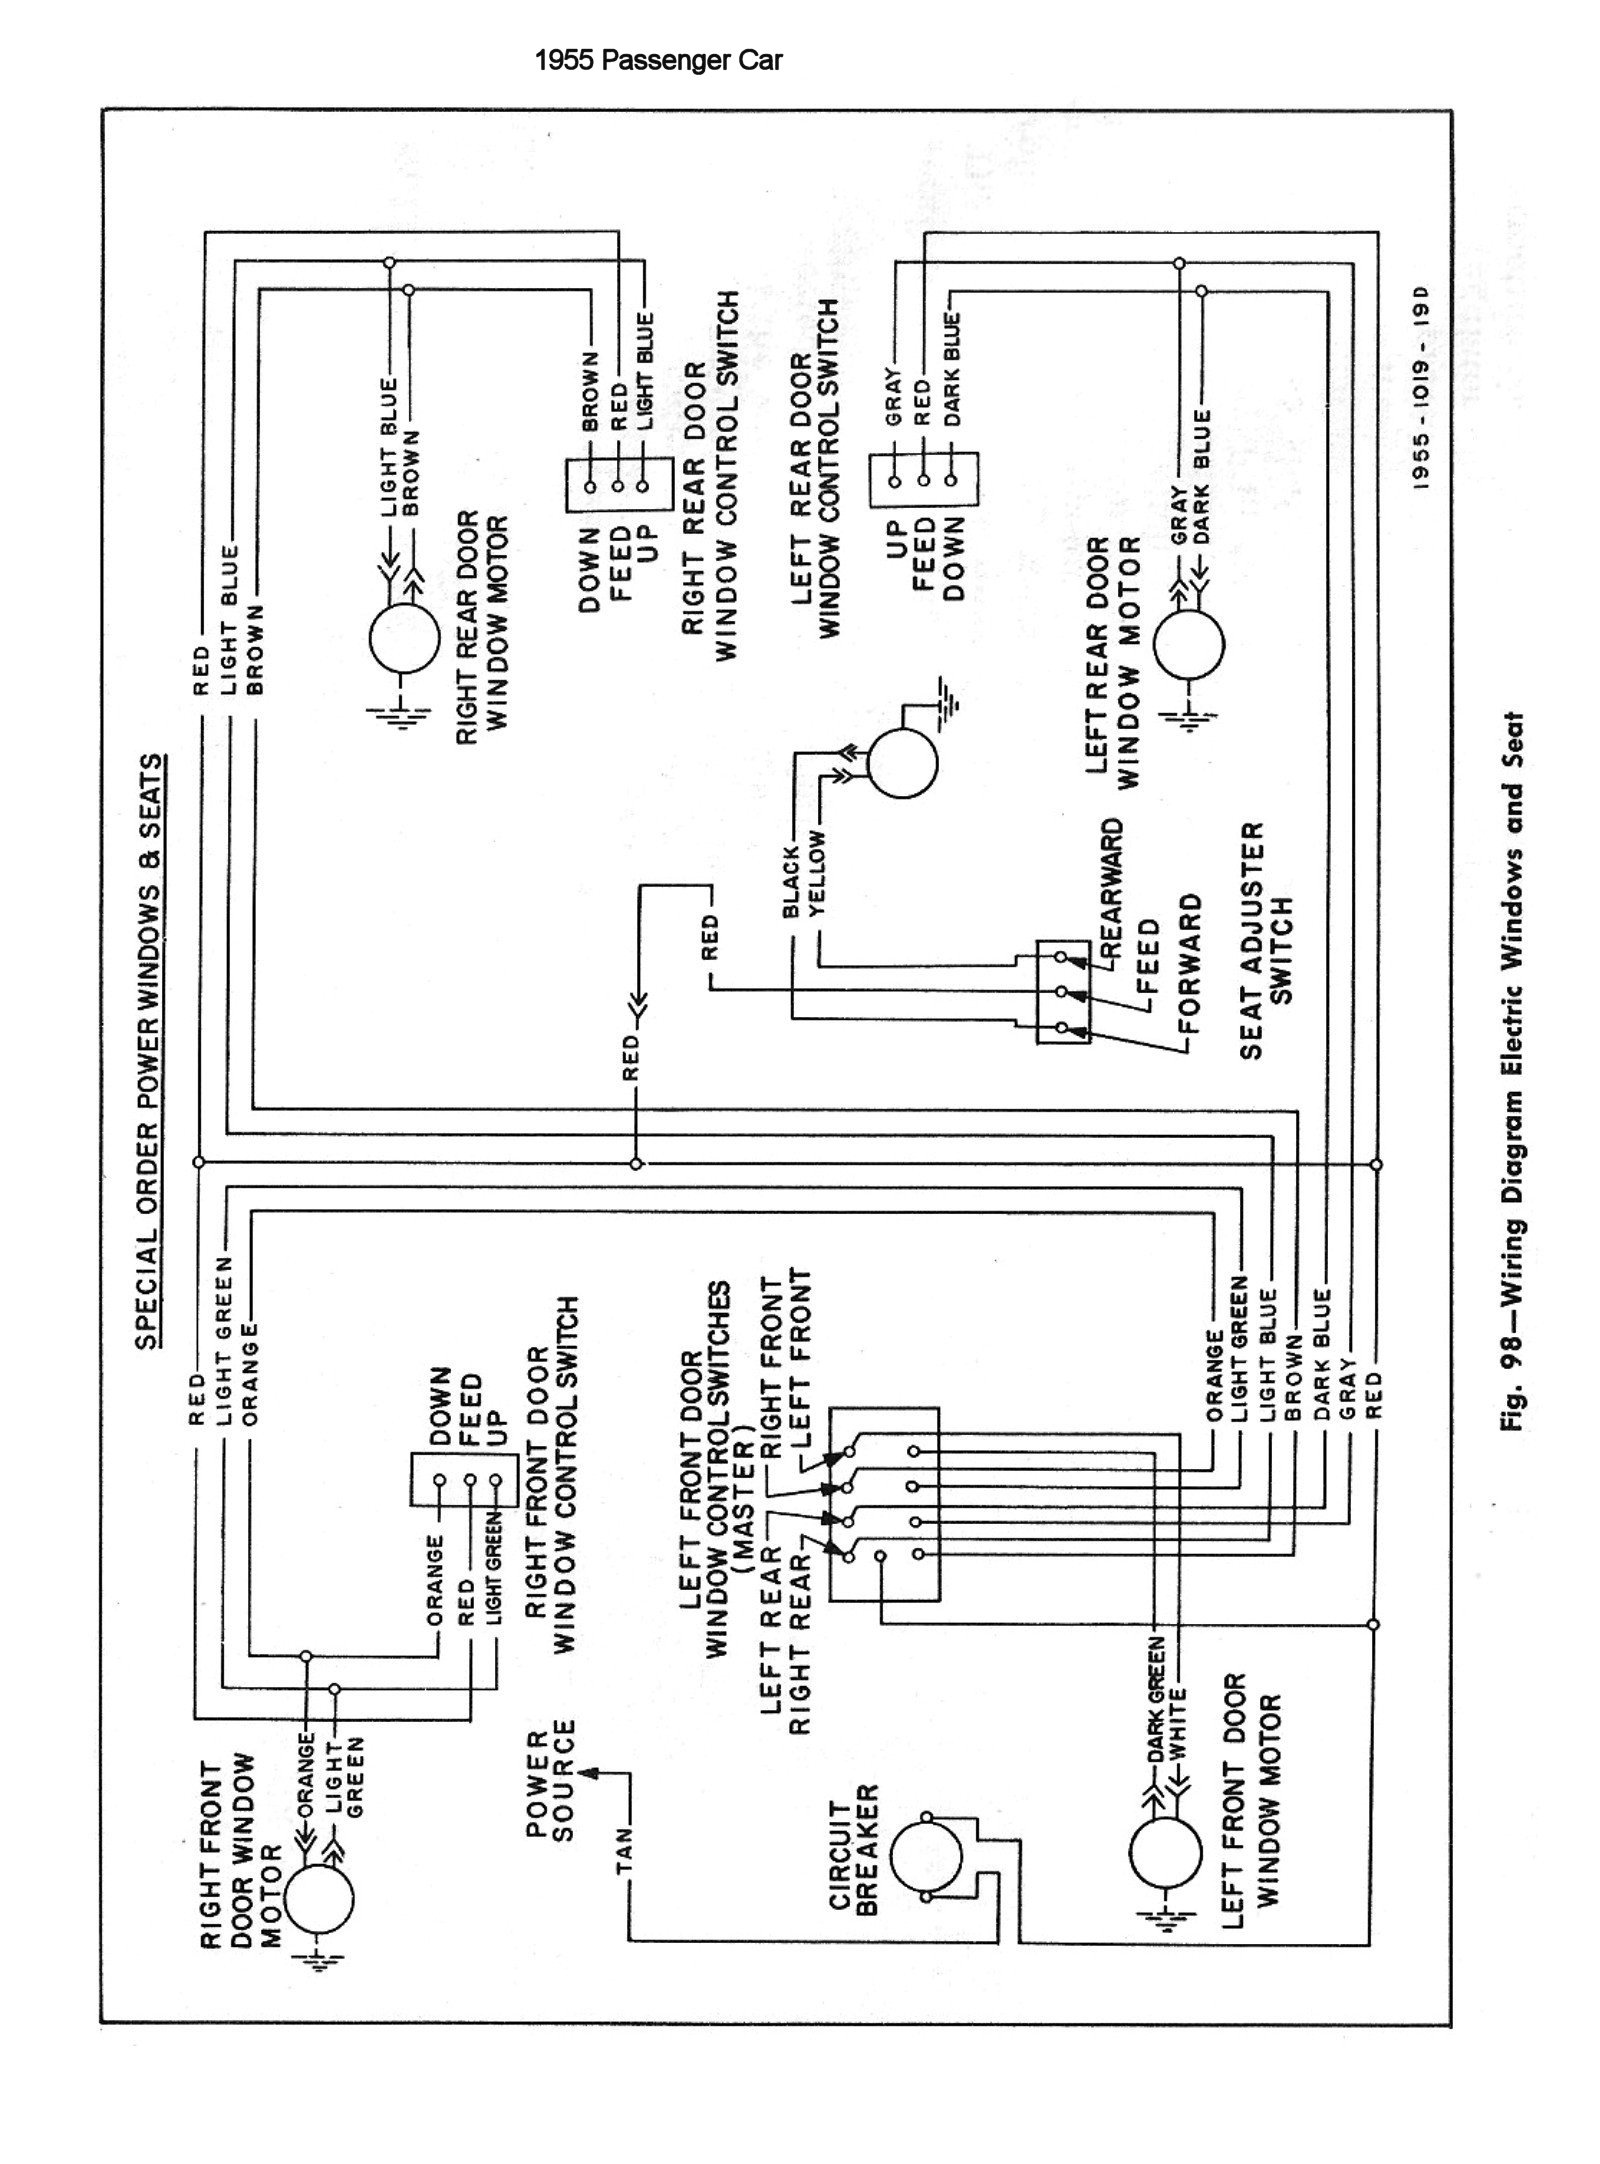 55csm0146 chevy wiring diagrams chevy truck wiring diagram at fashall.co